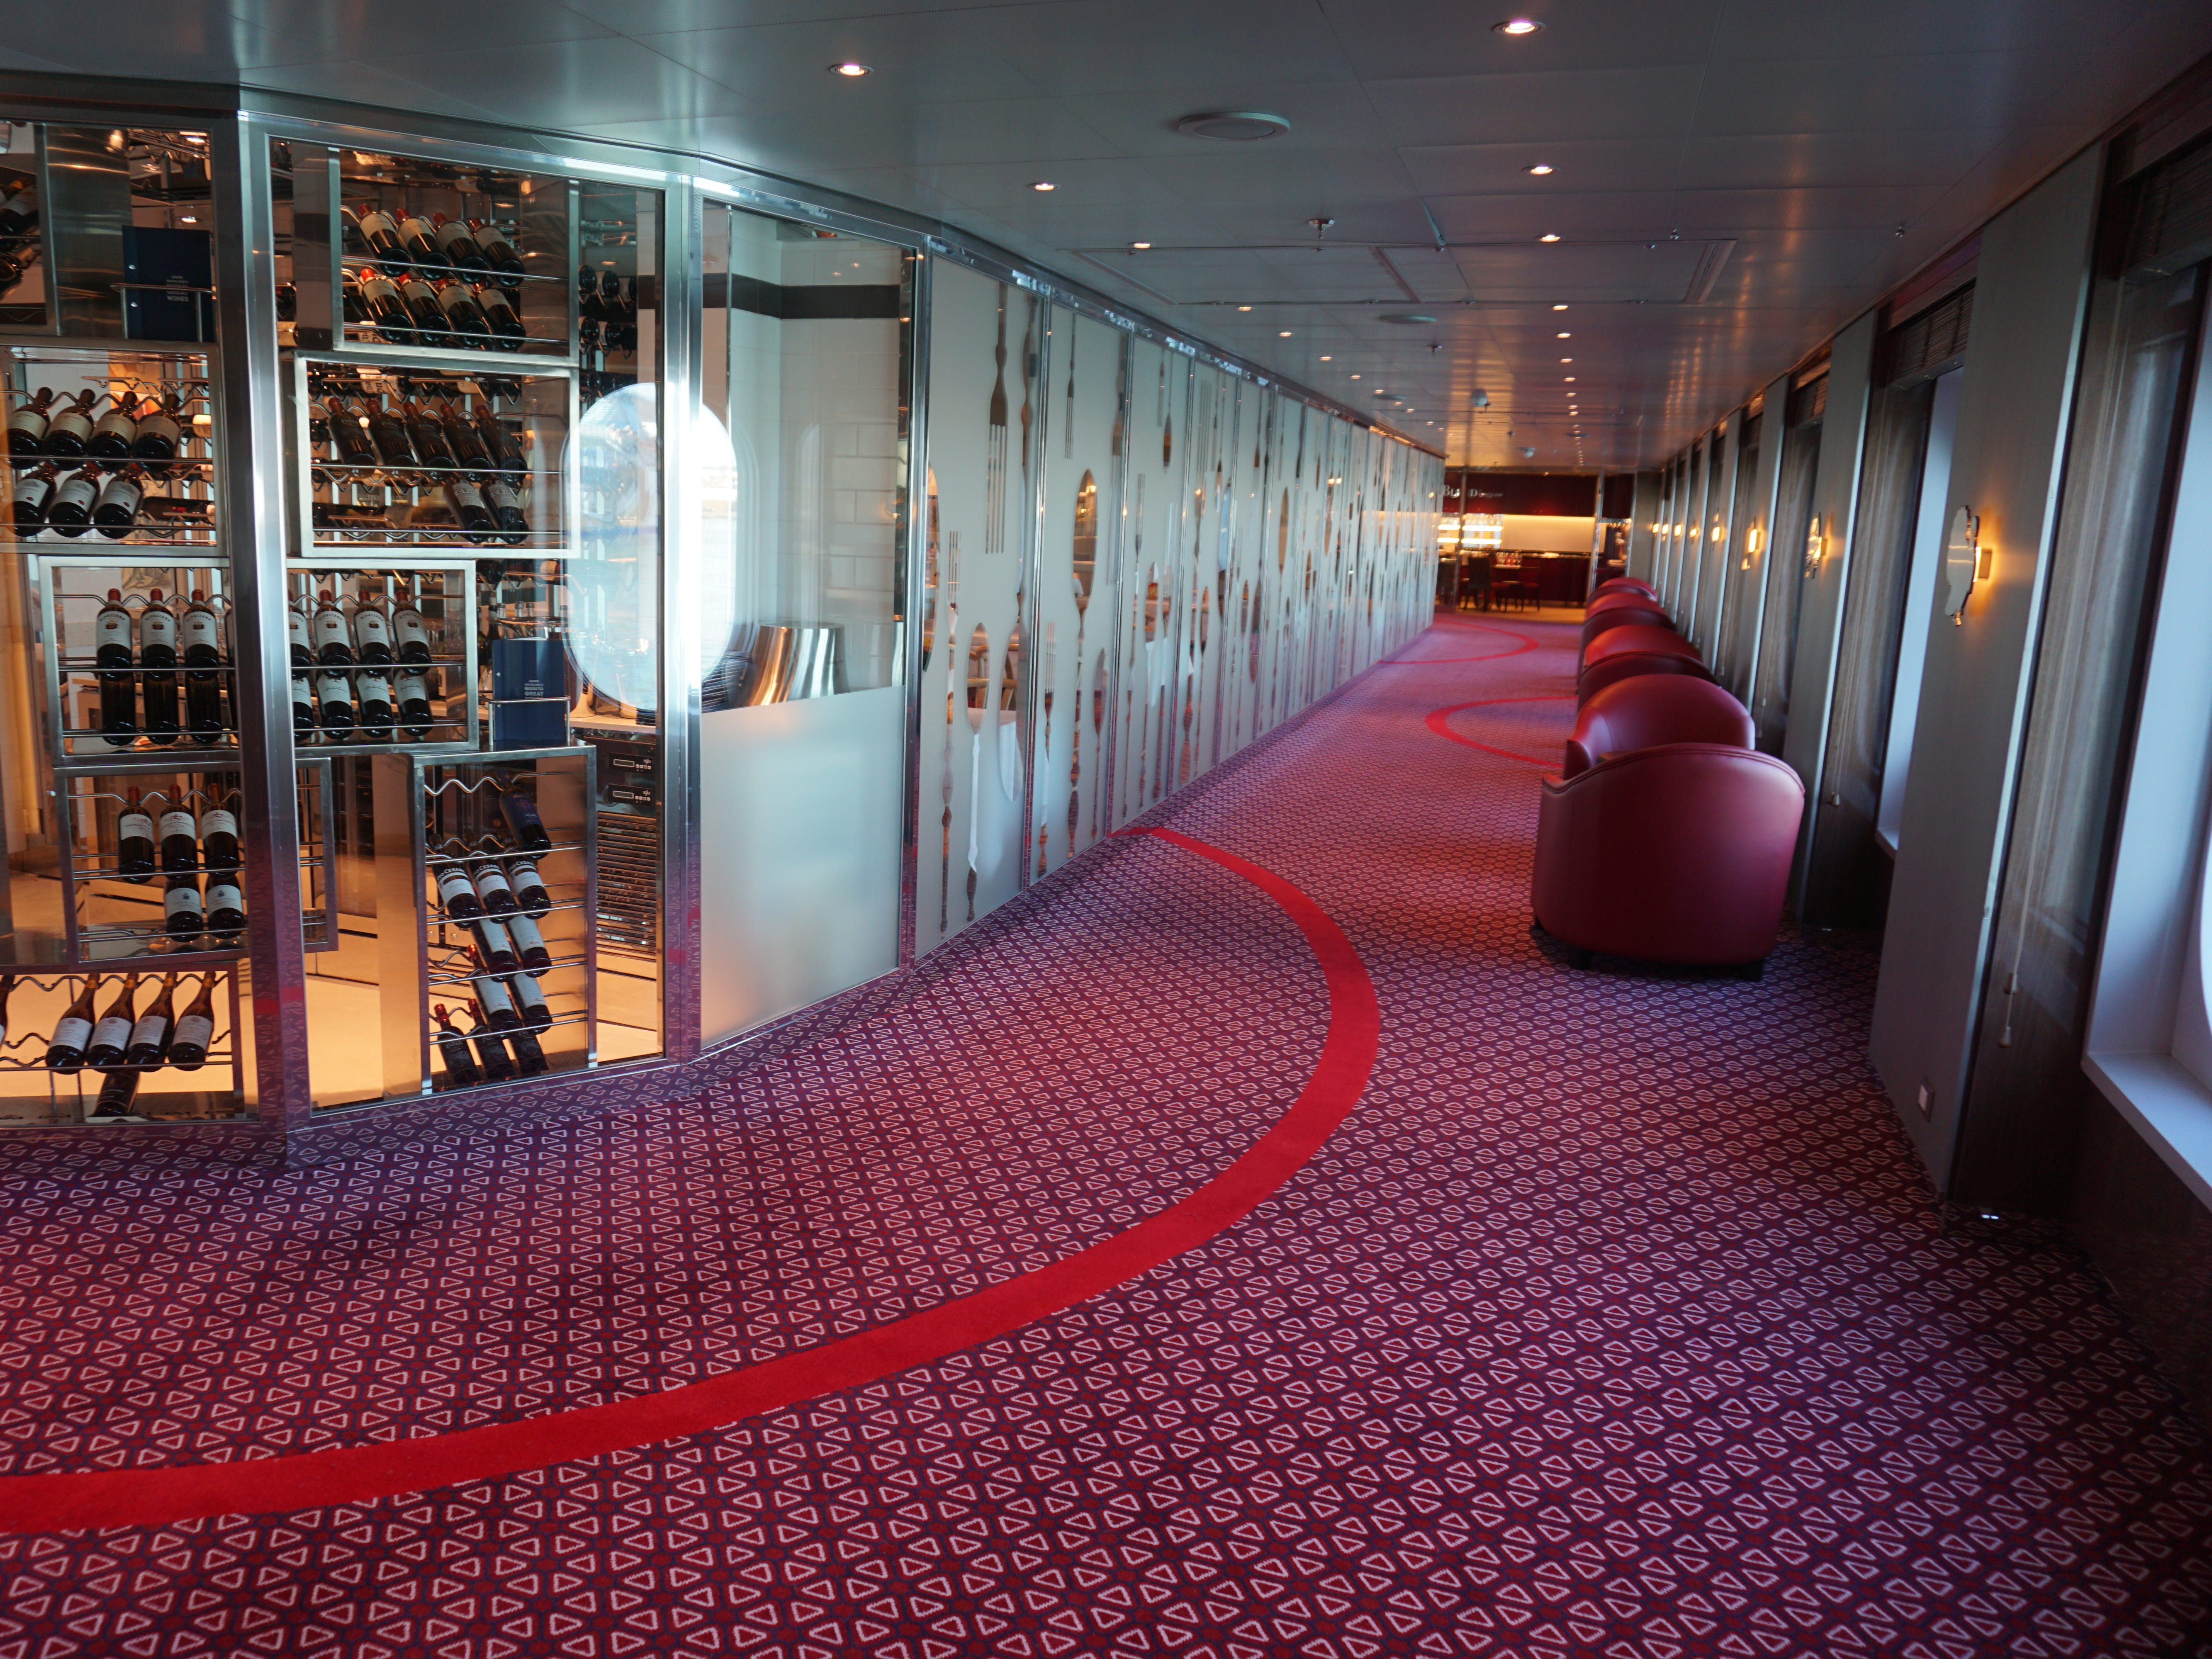 A wide passage with seating alcoves continues aft along the starboard side of Deck 2.